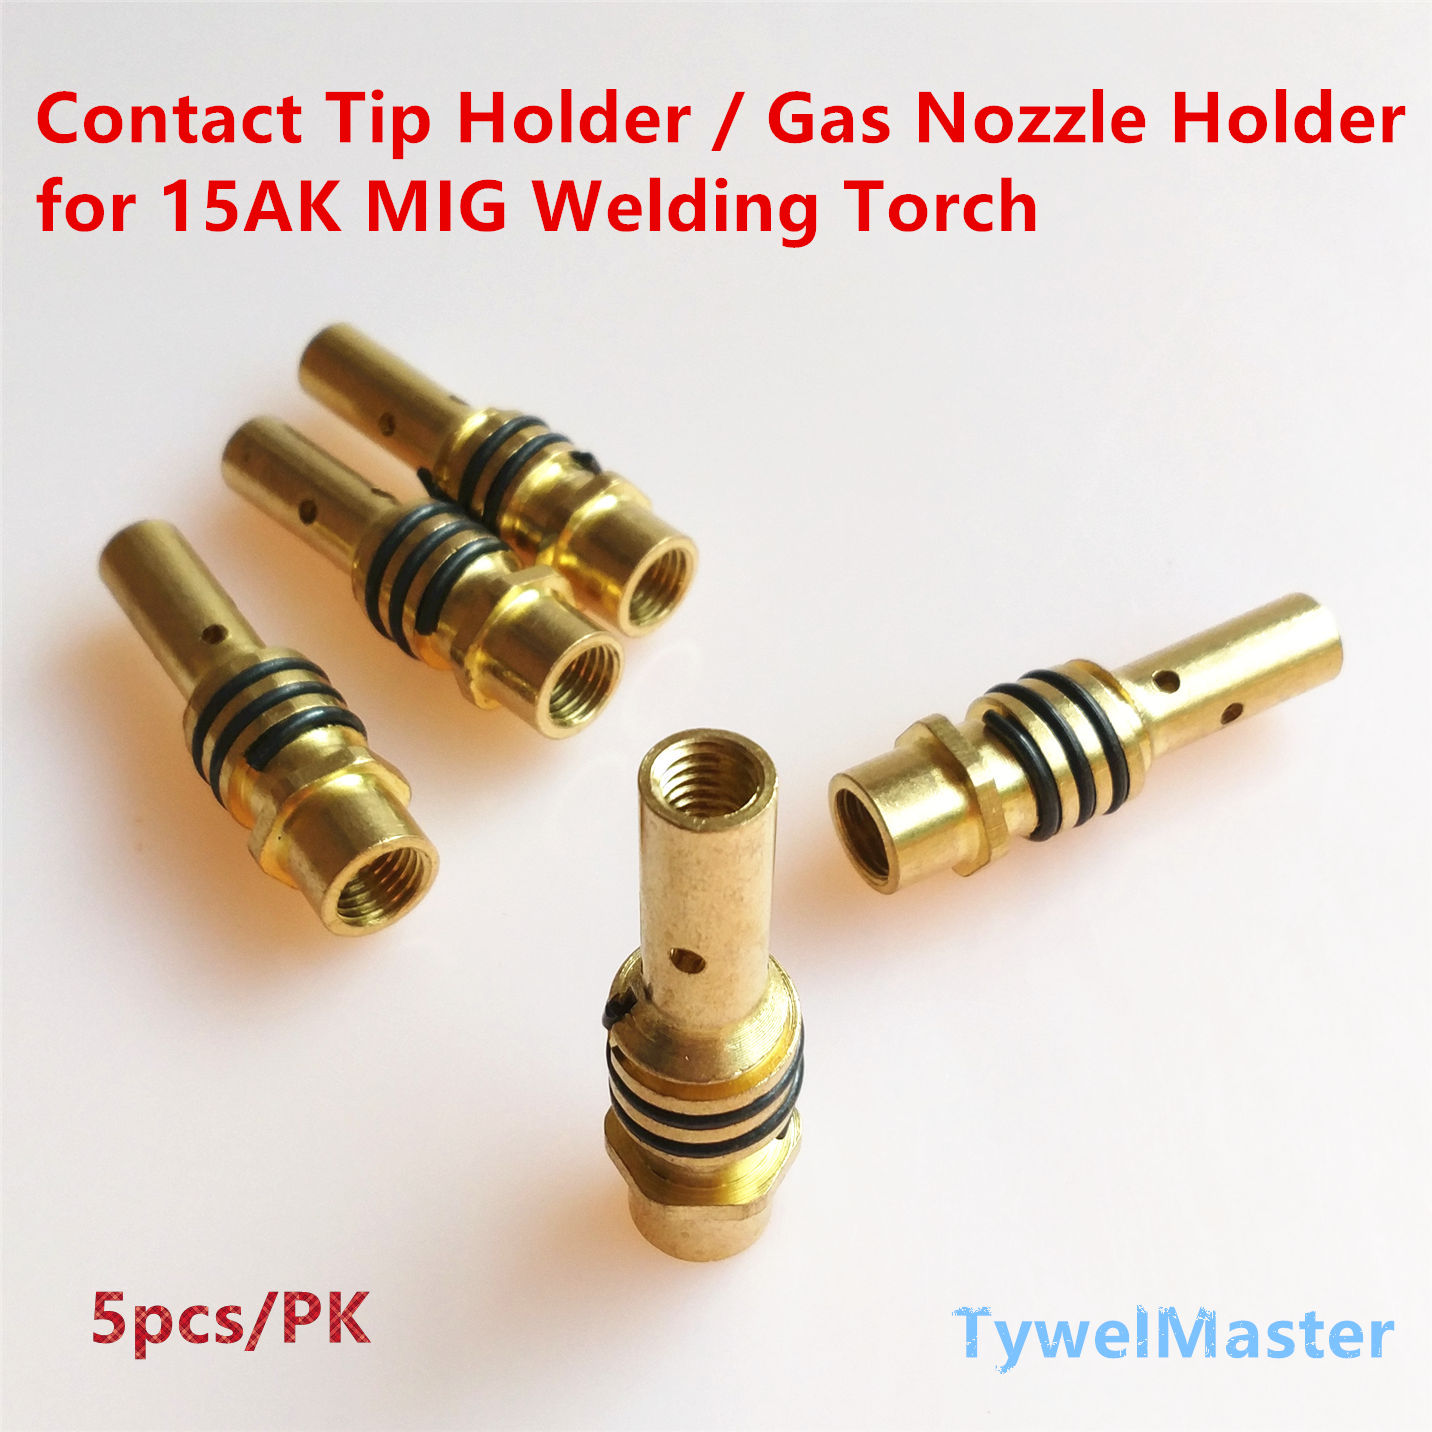 15AK Gas Nozzle Holder With Nozzle Spring For MIG/MAG Welding Torch Contact Tip Holder Of MB 15AK Welding Gun